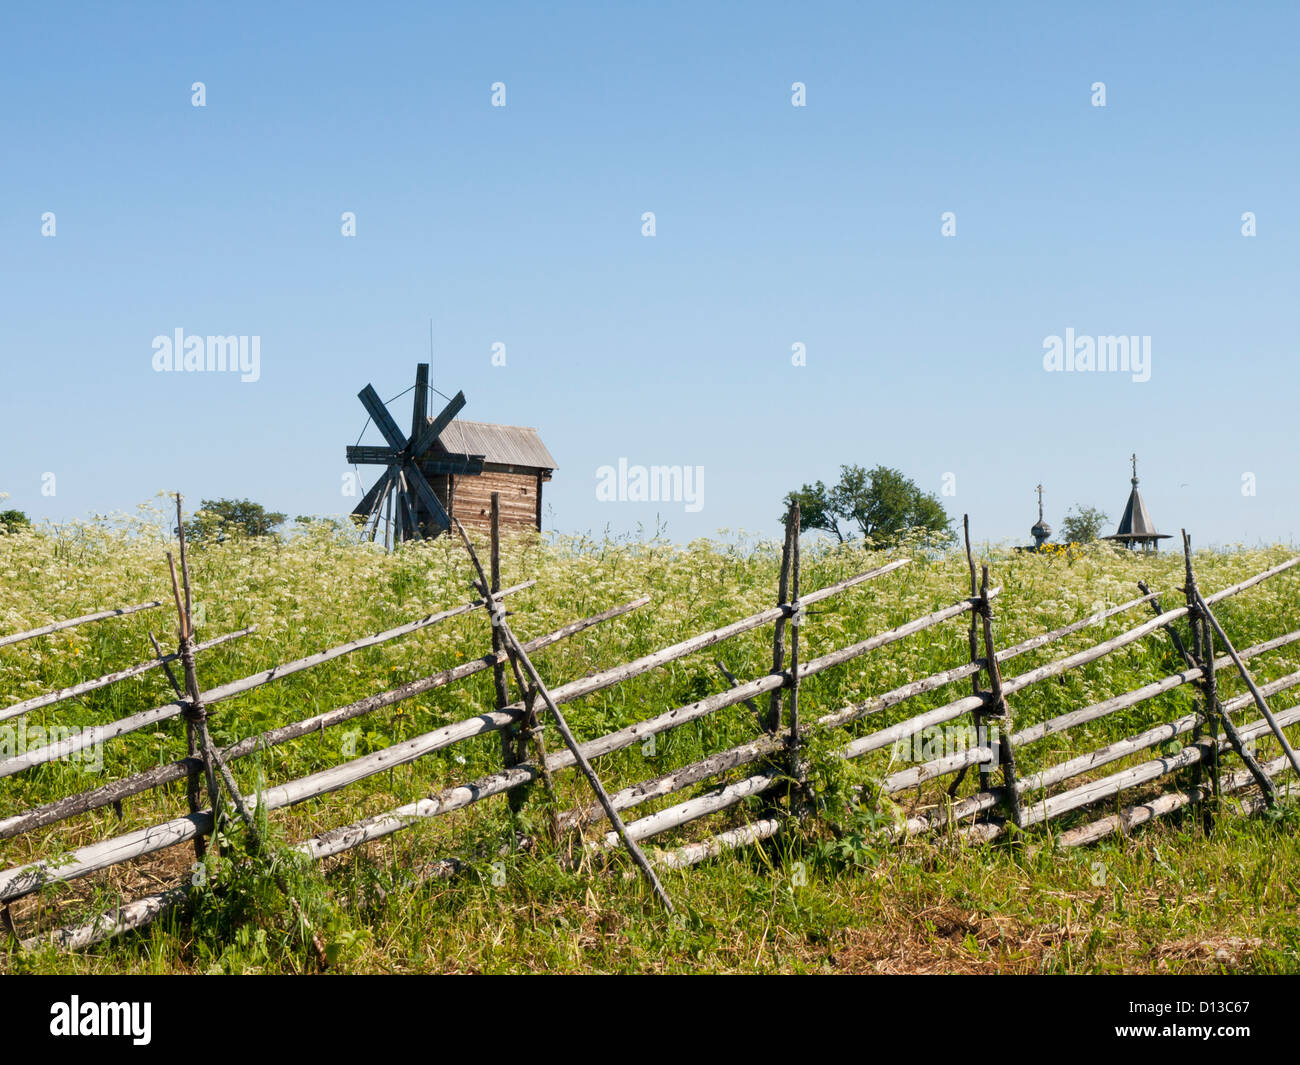 Kizhi open air museum on the island in Onega lake in Russia roundpole fence fields and wooden windmill - Stock Image